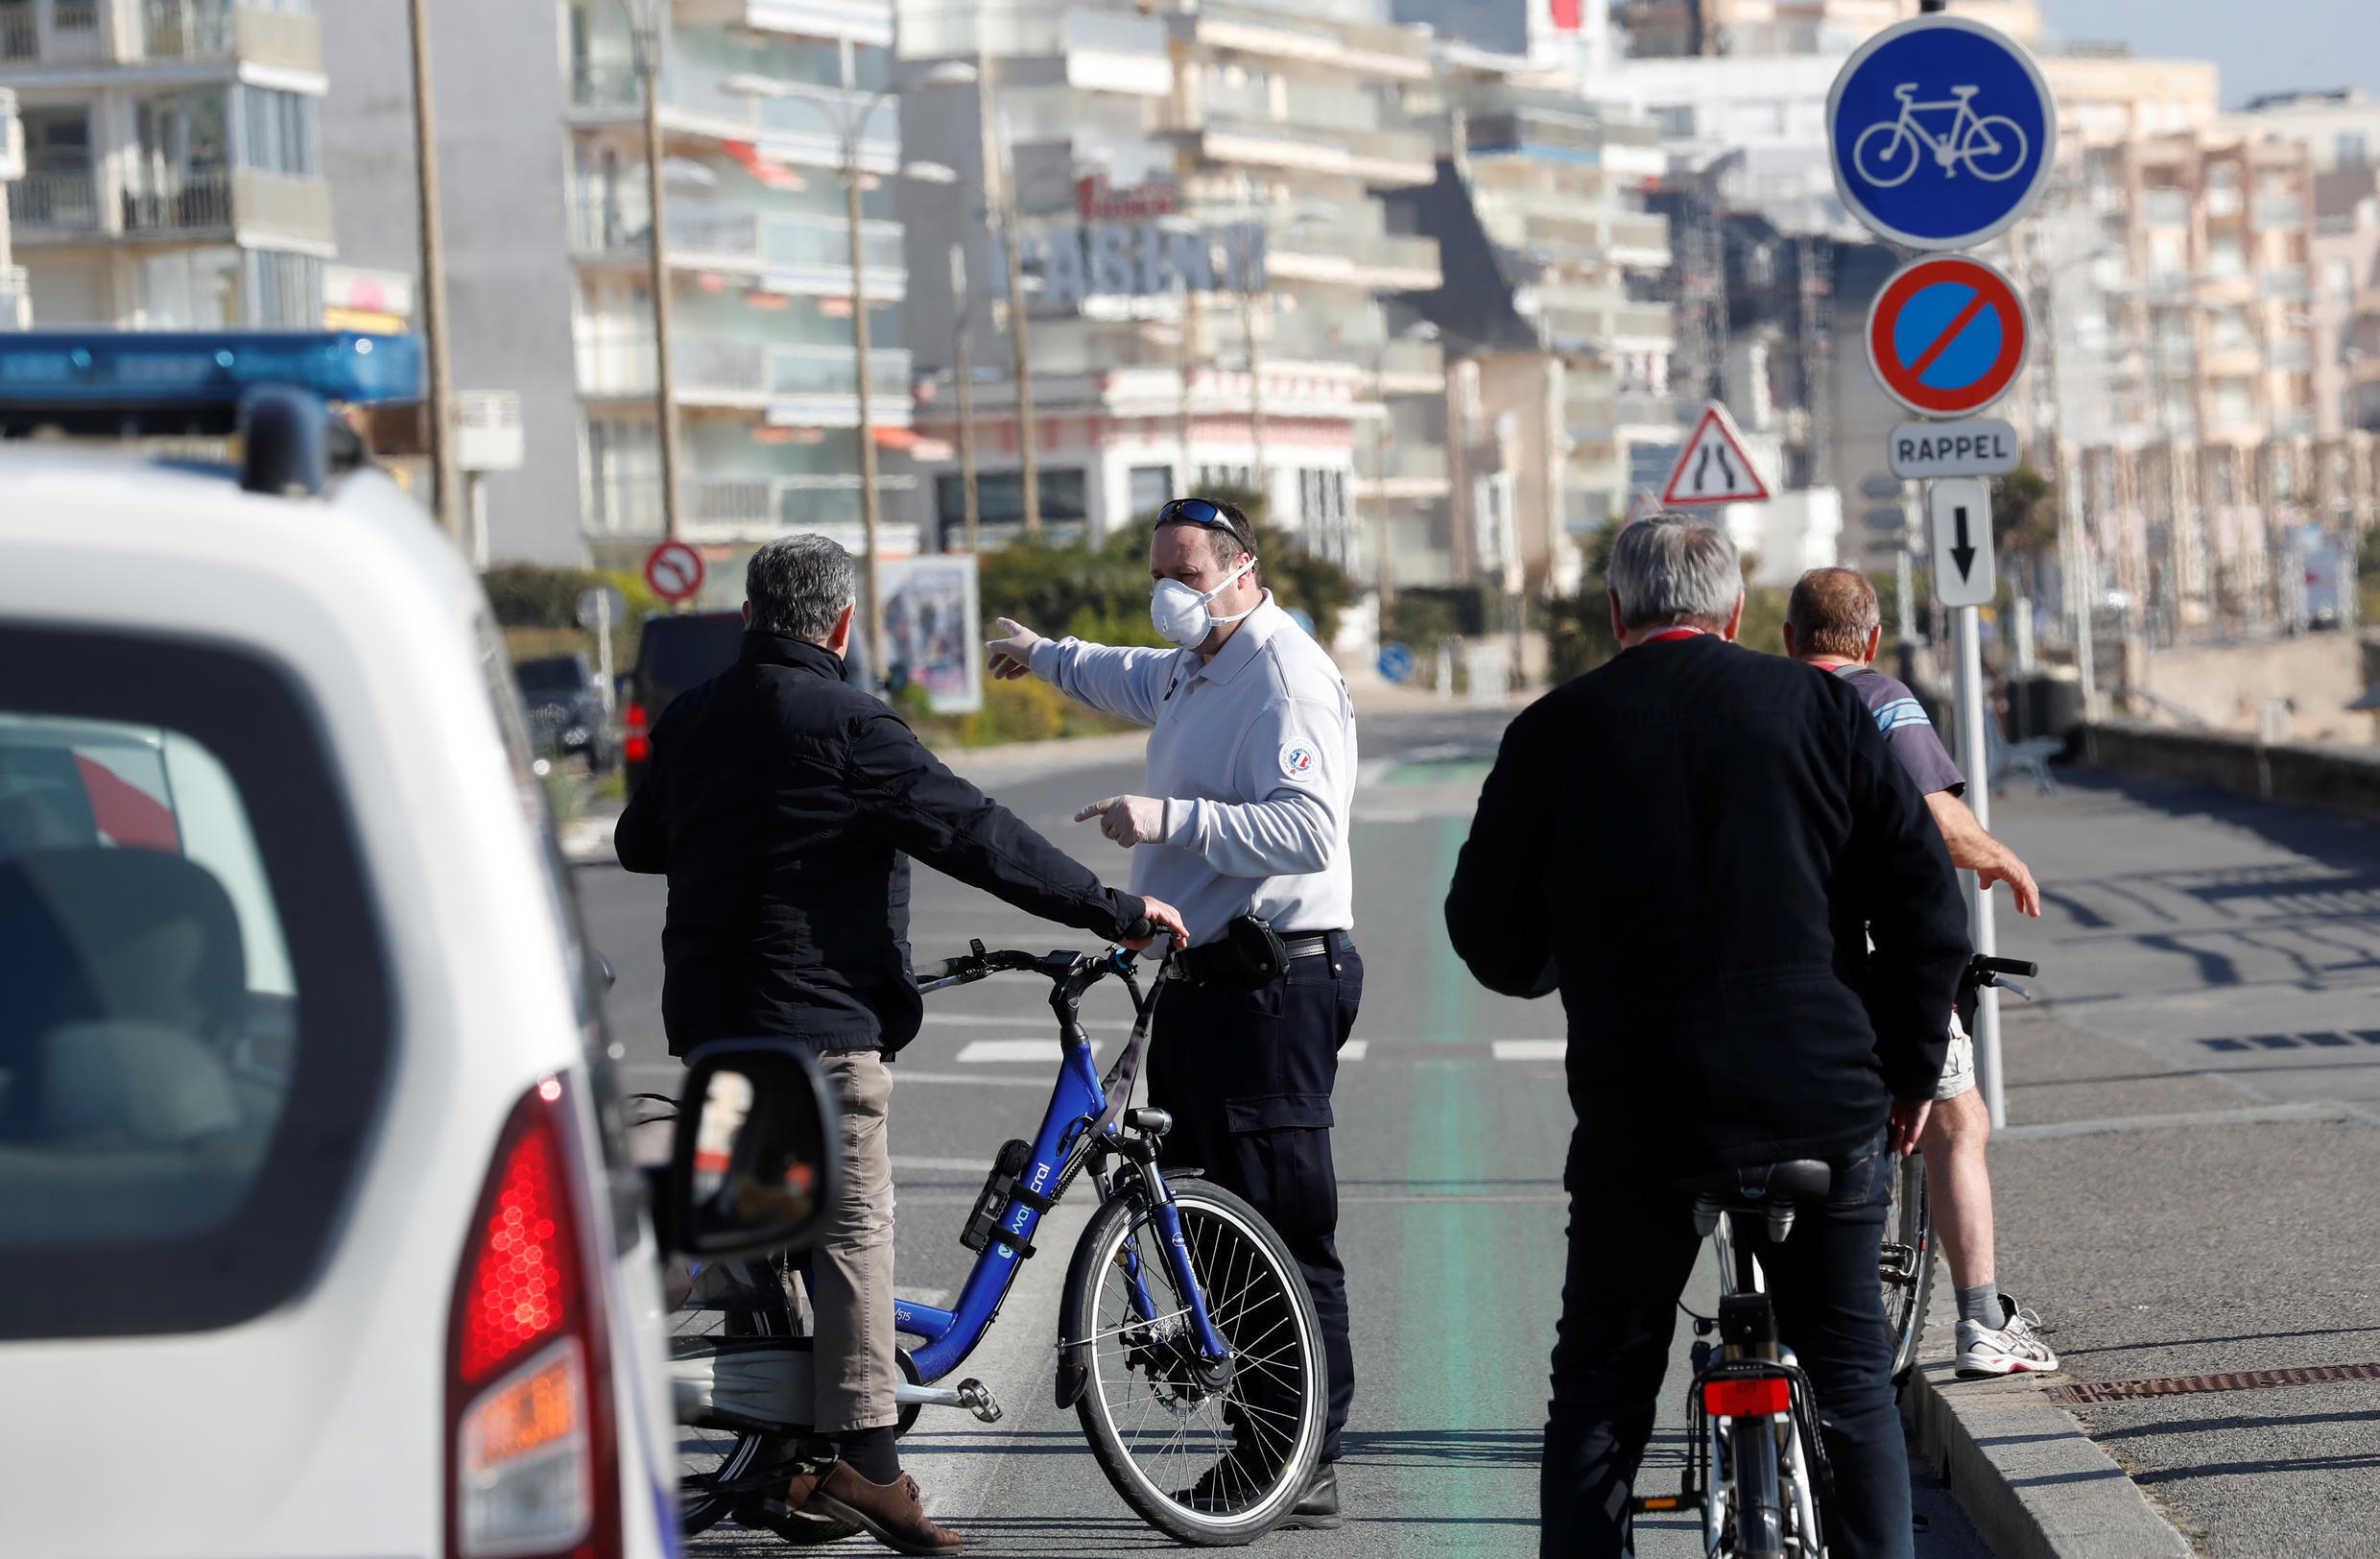 French police impose lockdown